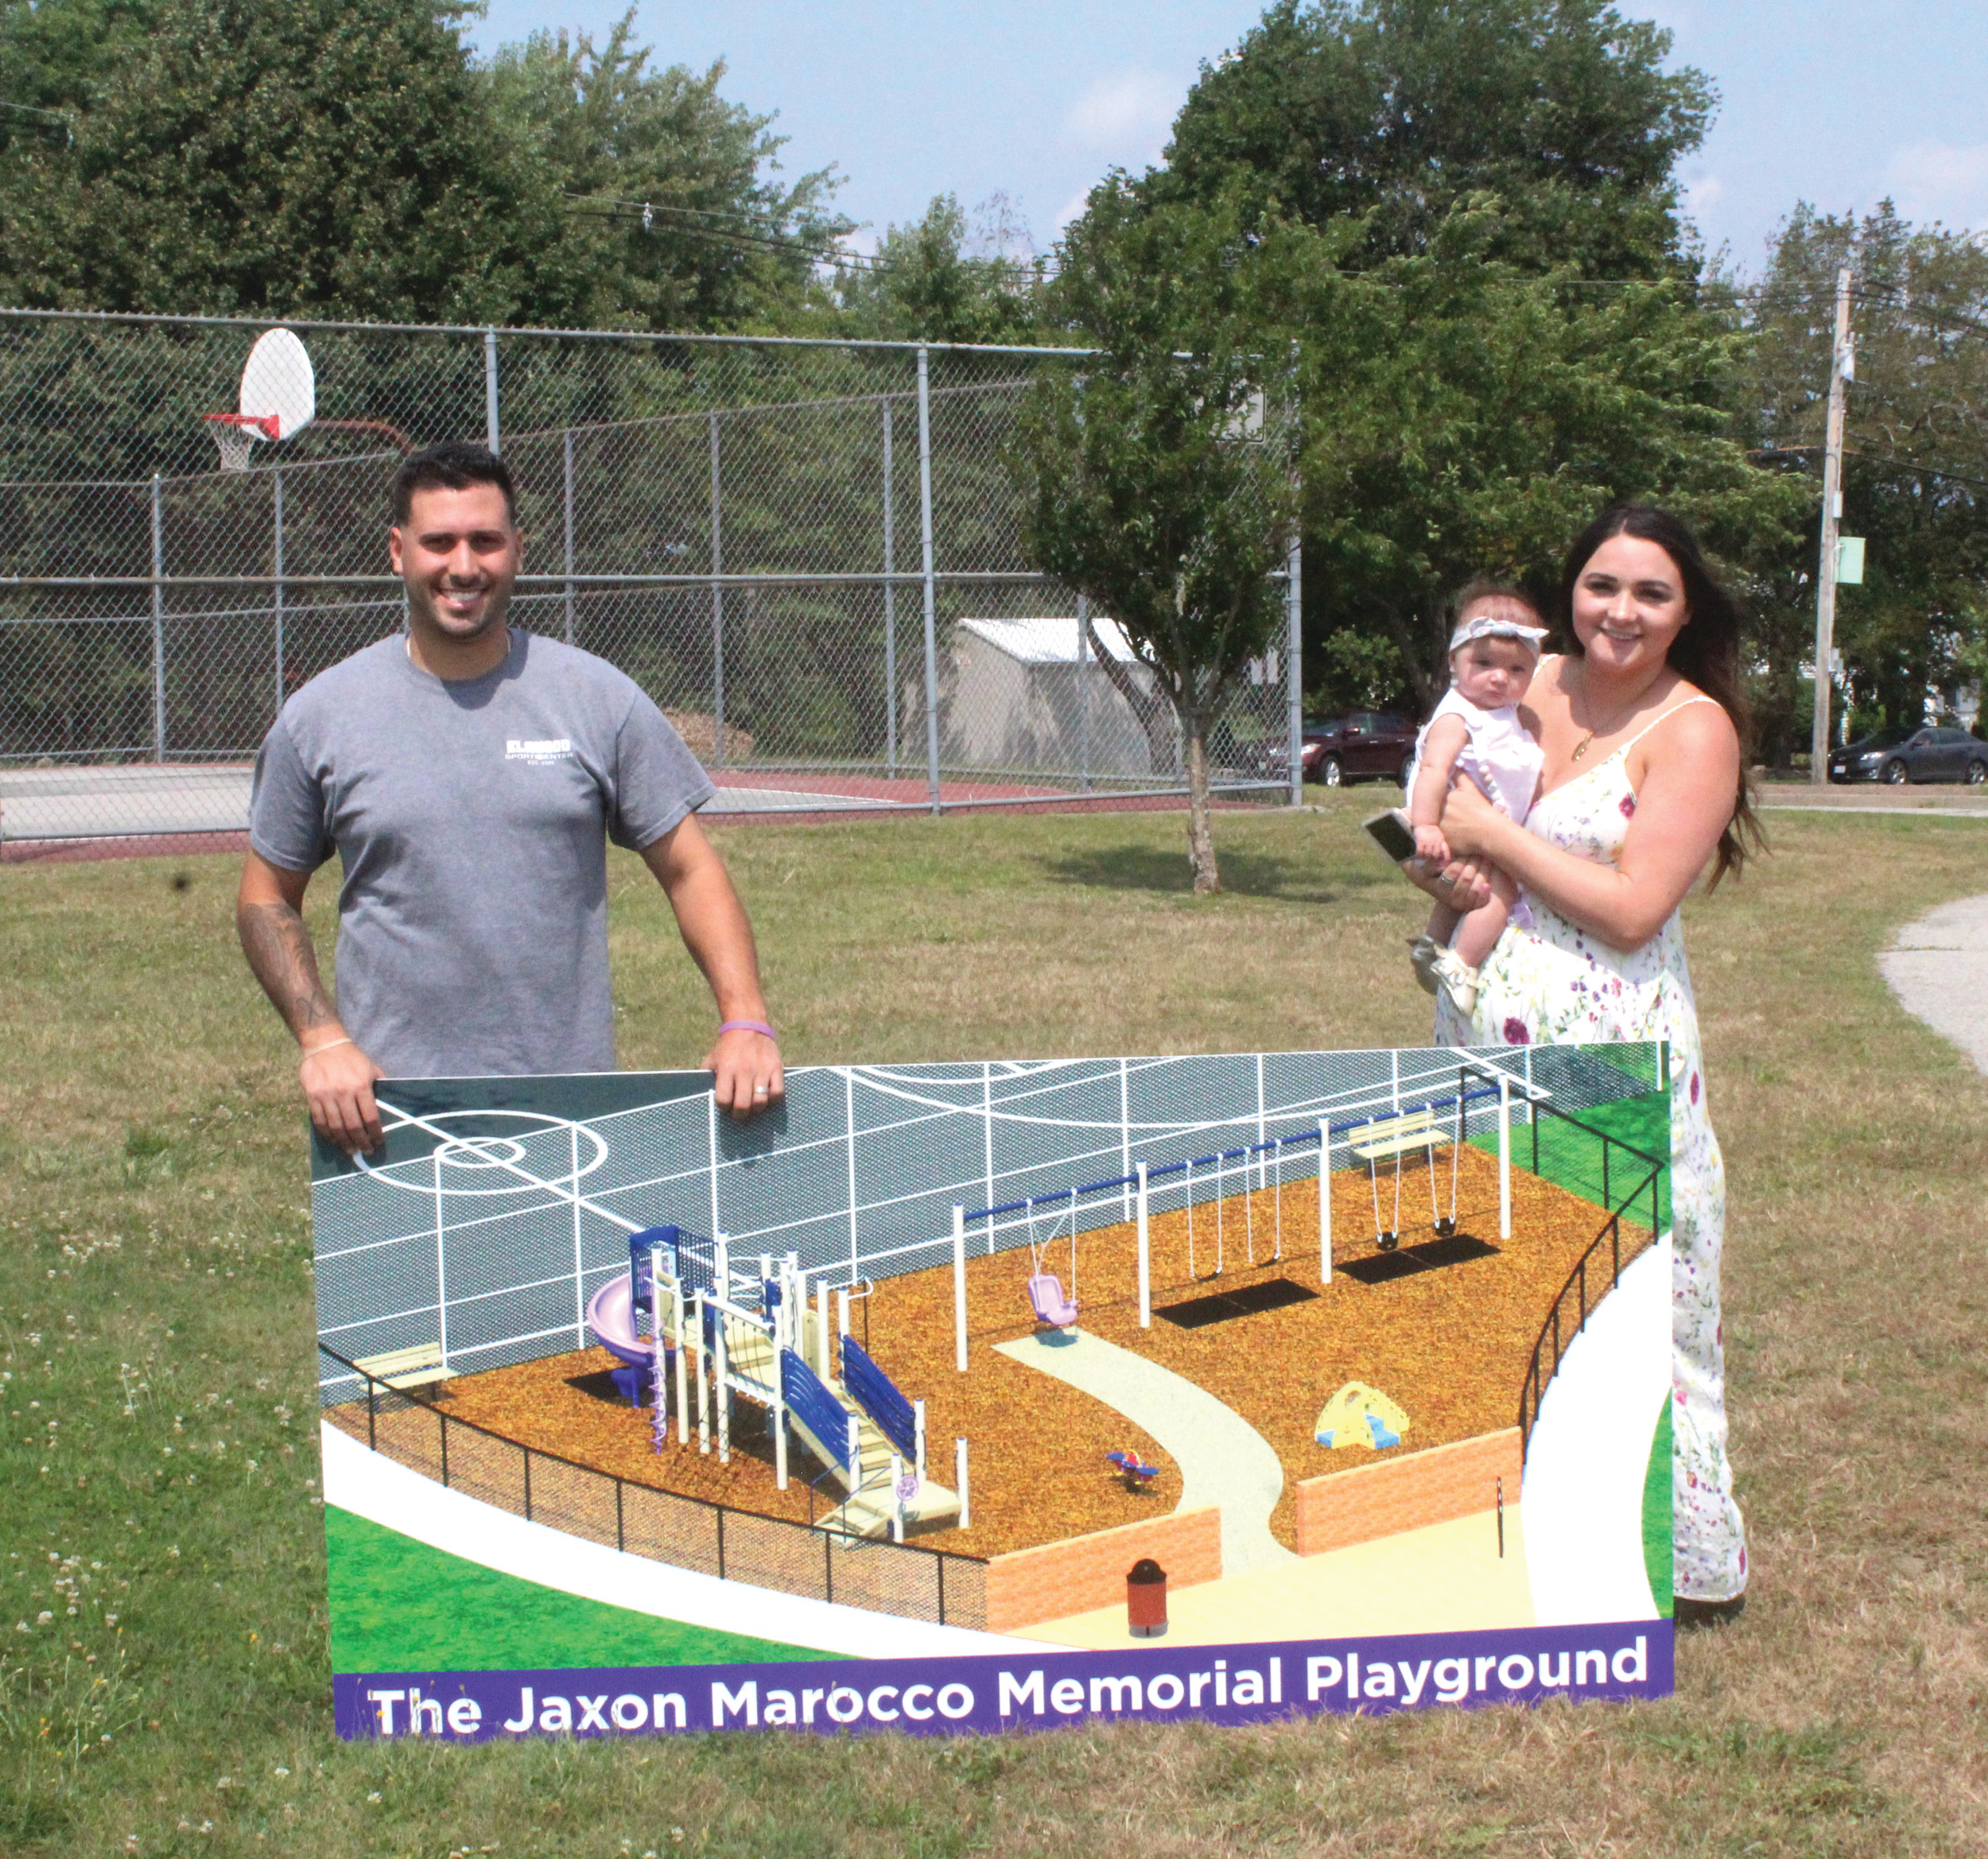 Mark and Tori Marocco, alongside their daughter, Landree, unveil their plan to construct The Jaxon Marocco Memorial Playground on Tuesday.